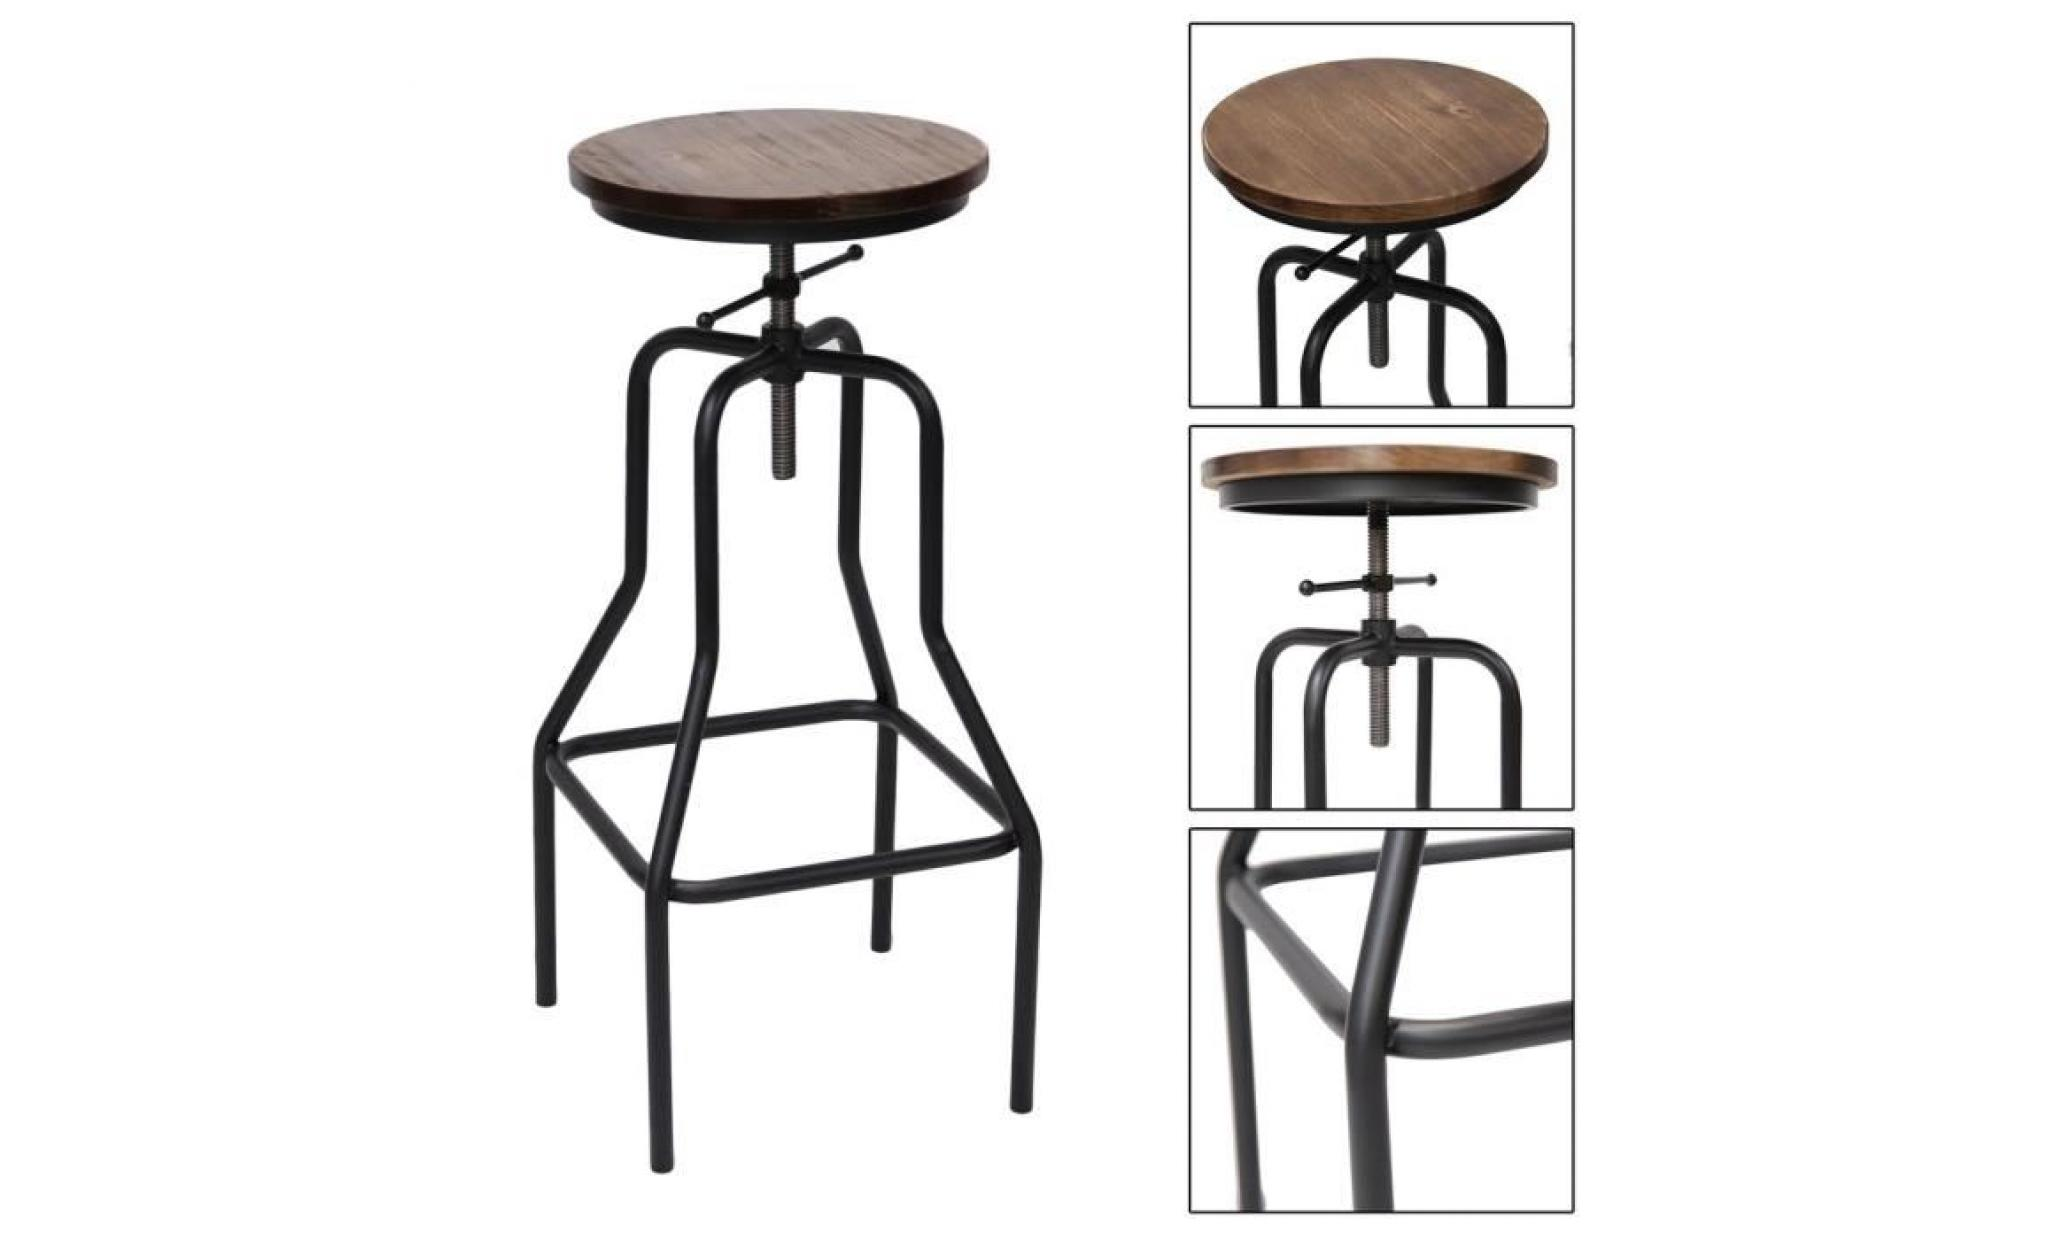 tabouret réglable de bar design vintage 33.5*33.5*(69 89)cm